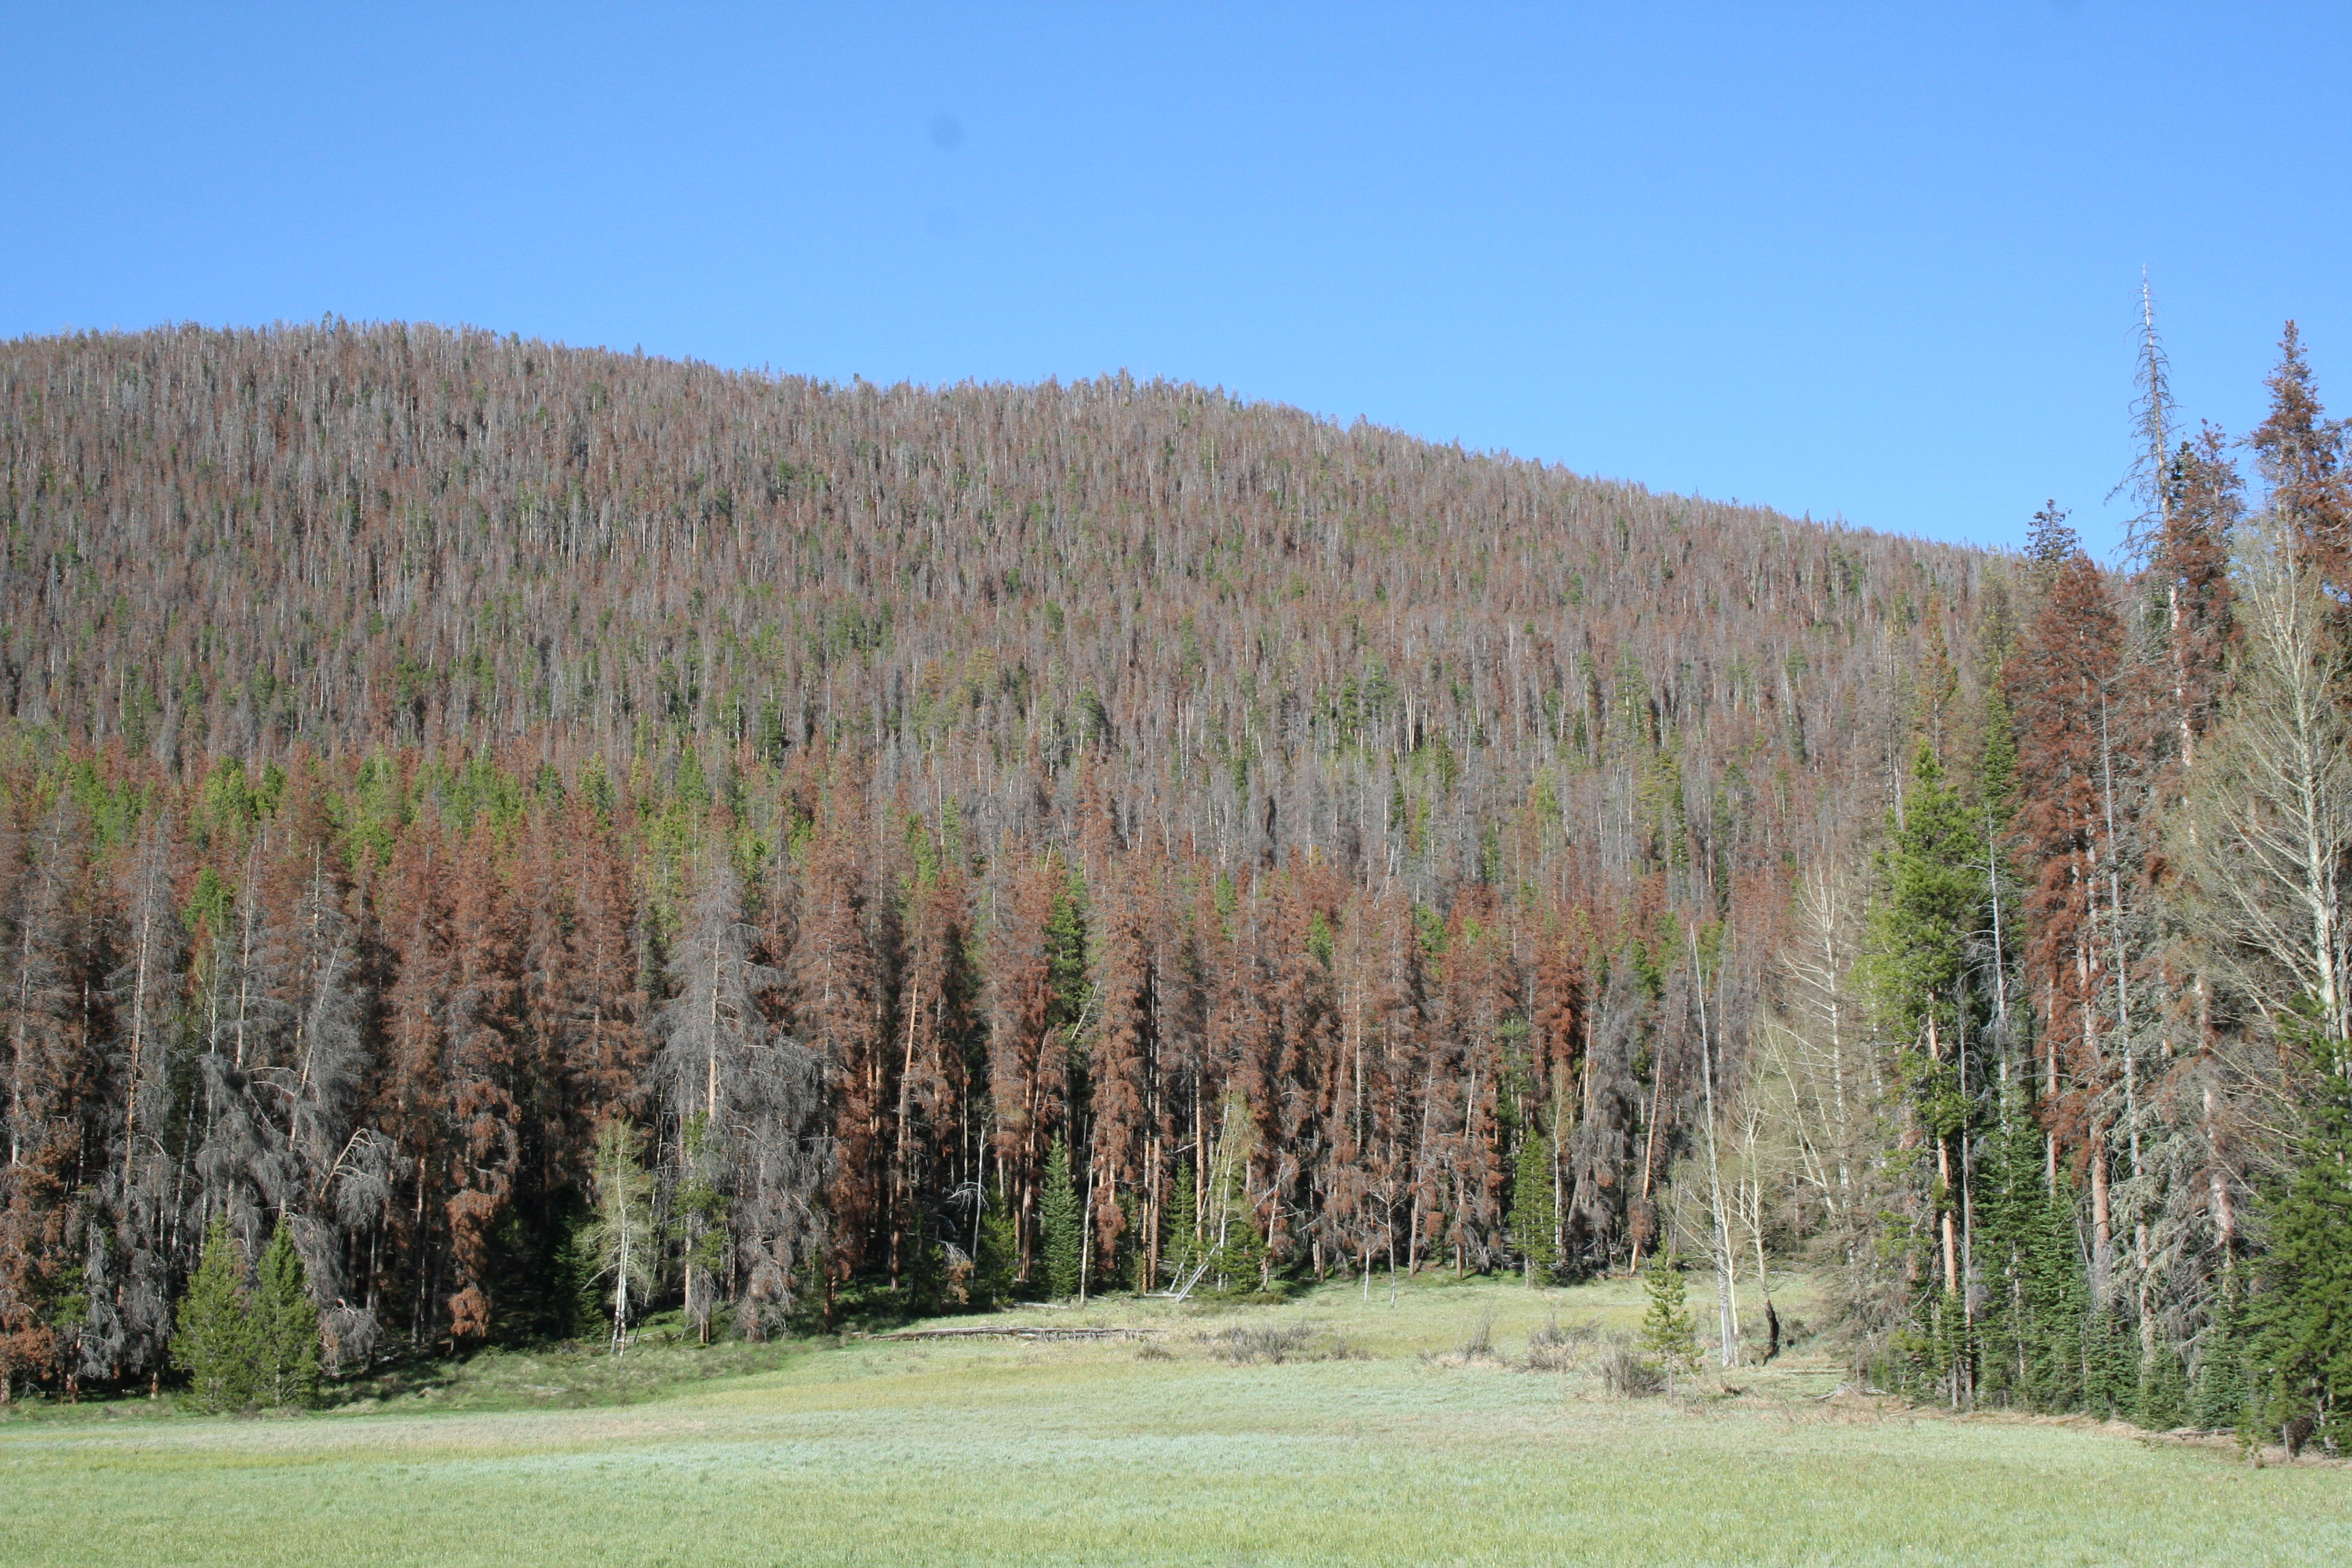 Mountain Pine Beetle in Rocky Mountain National Park